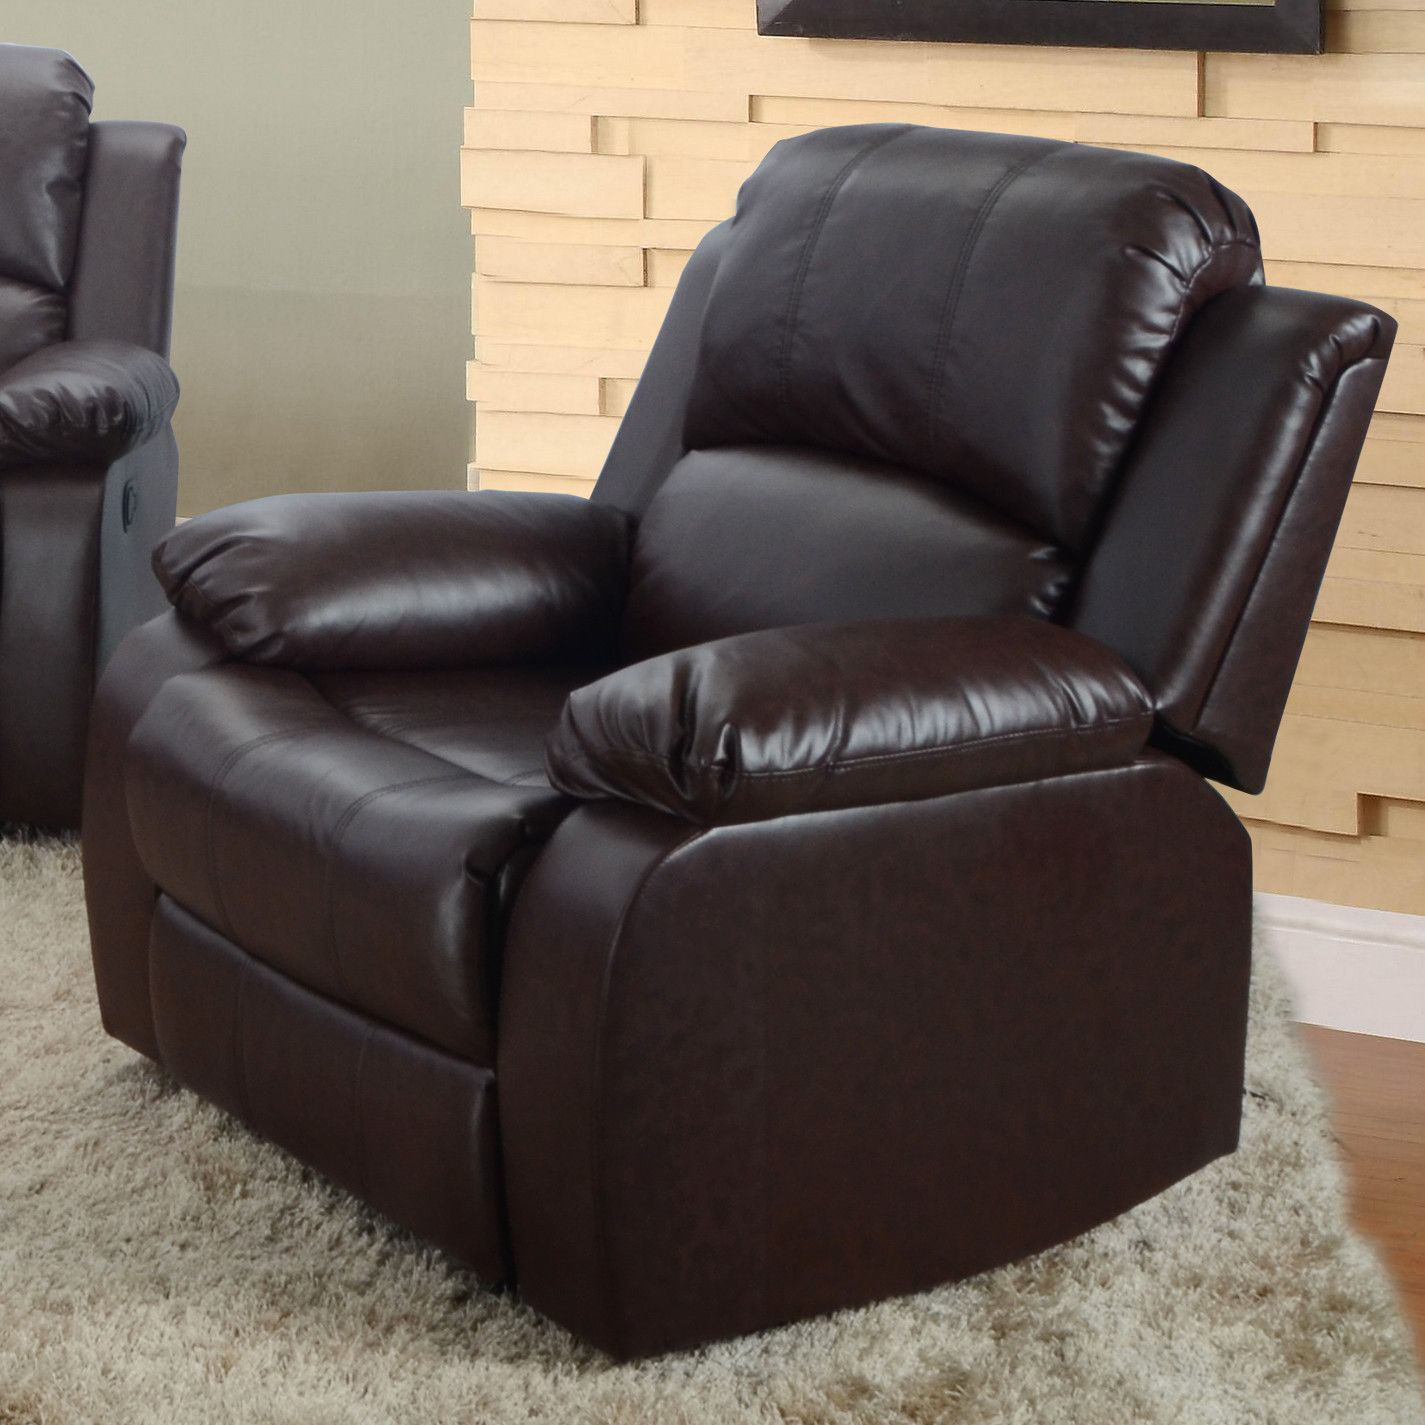 Denver Recliner & Denver Recliner | Products | Pinterest | Recliners and Denver islam-shia.org